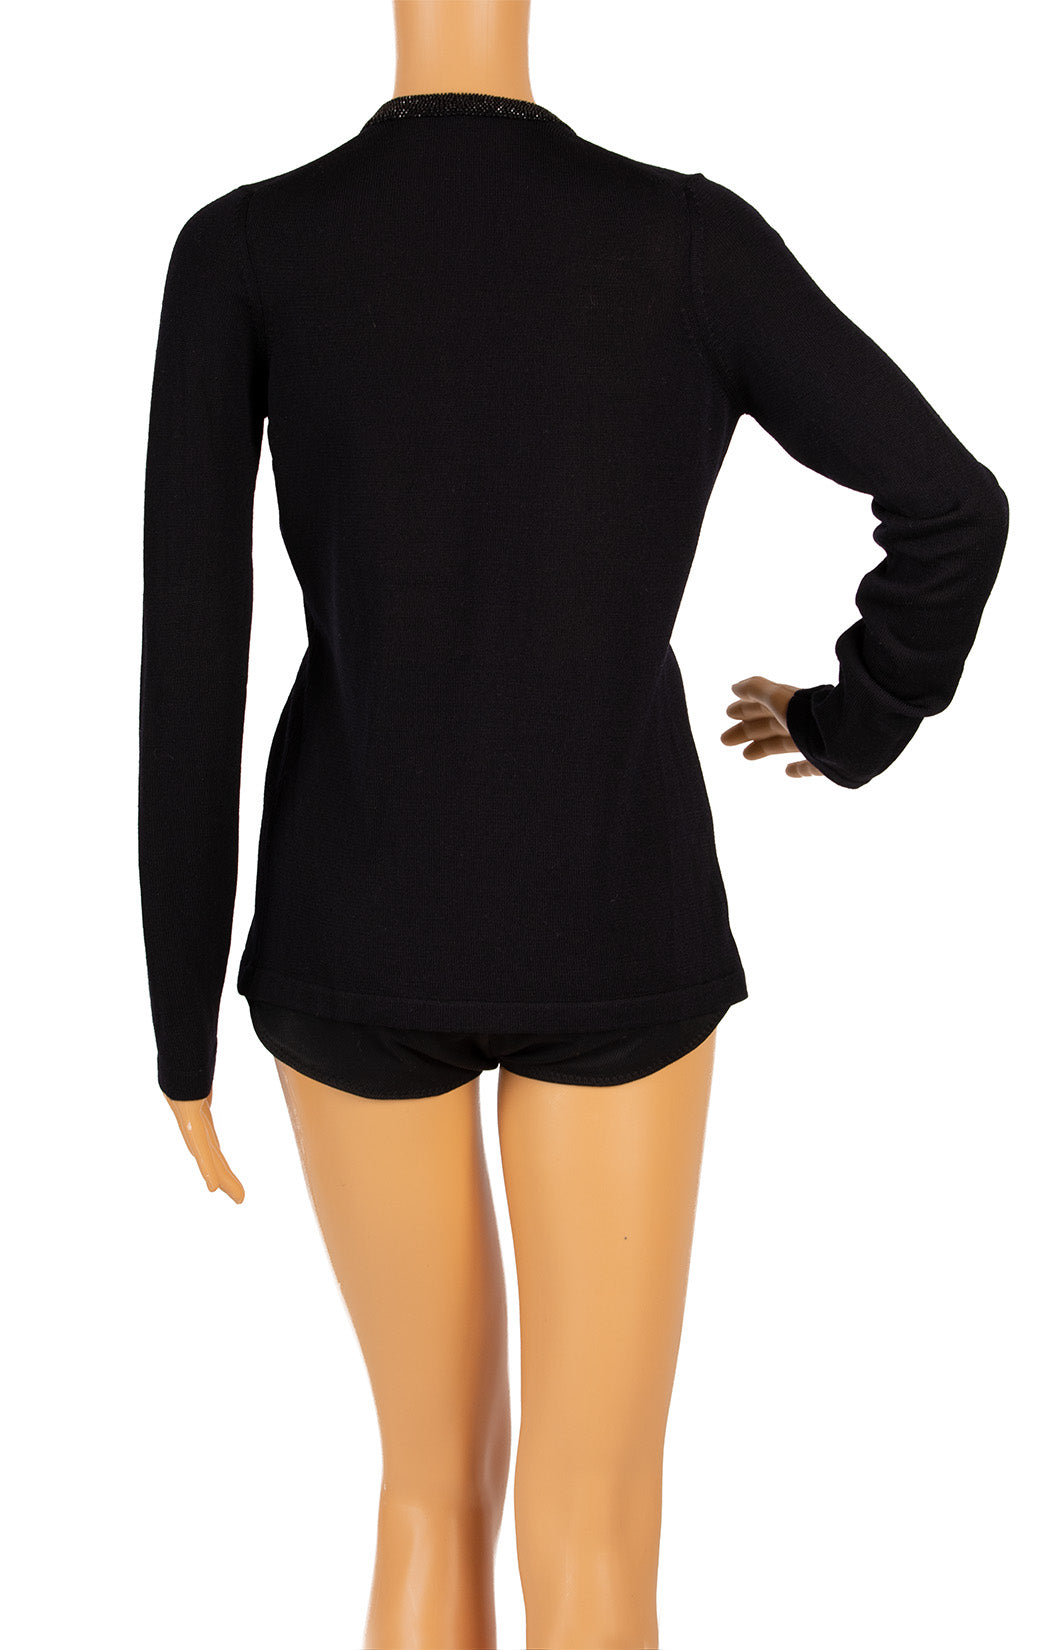 Back view of DONNA KARAN Sweater Size: XS